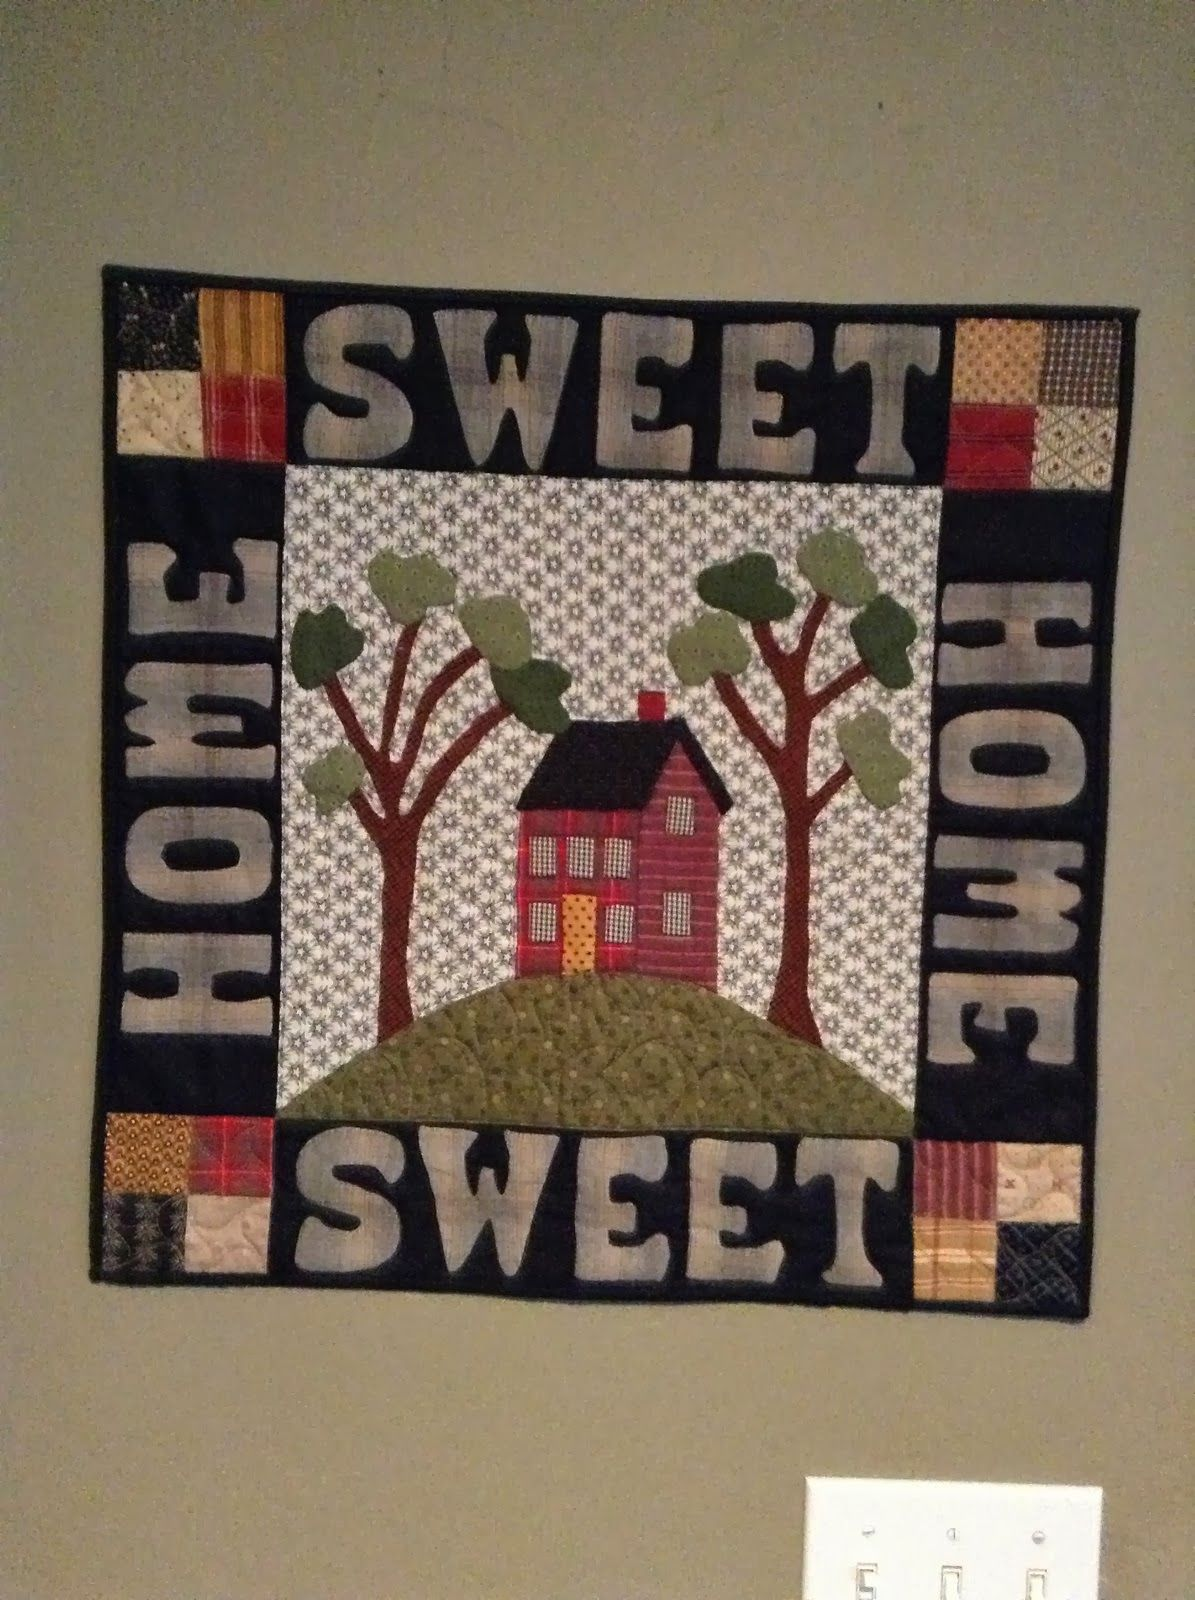 Home sweet home by Timeless Traditions | craft ideas to make | Pinterest